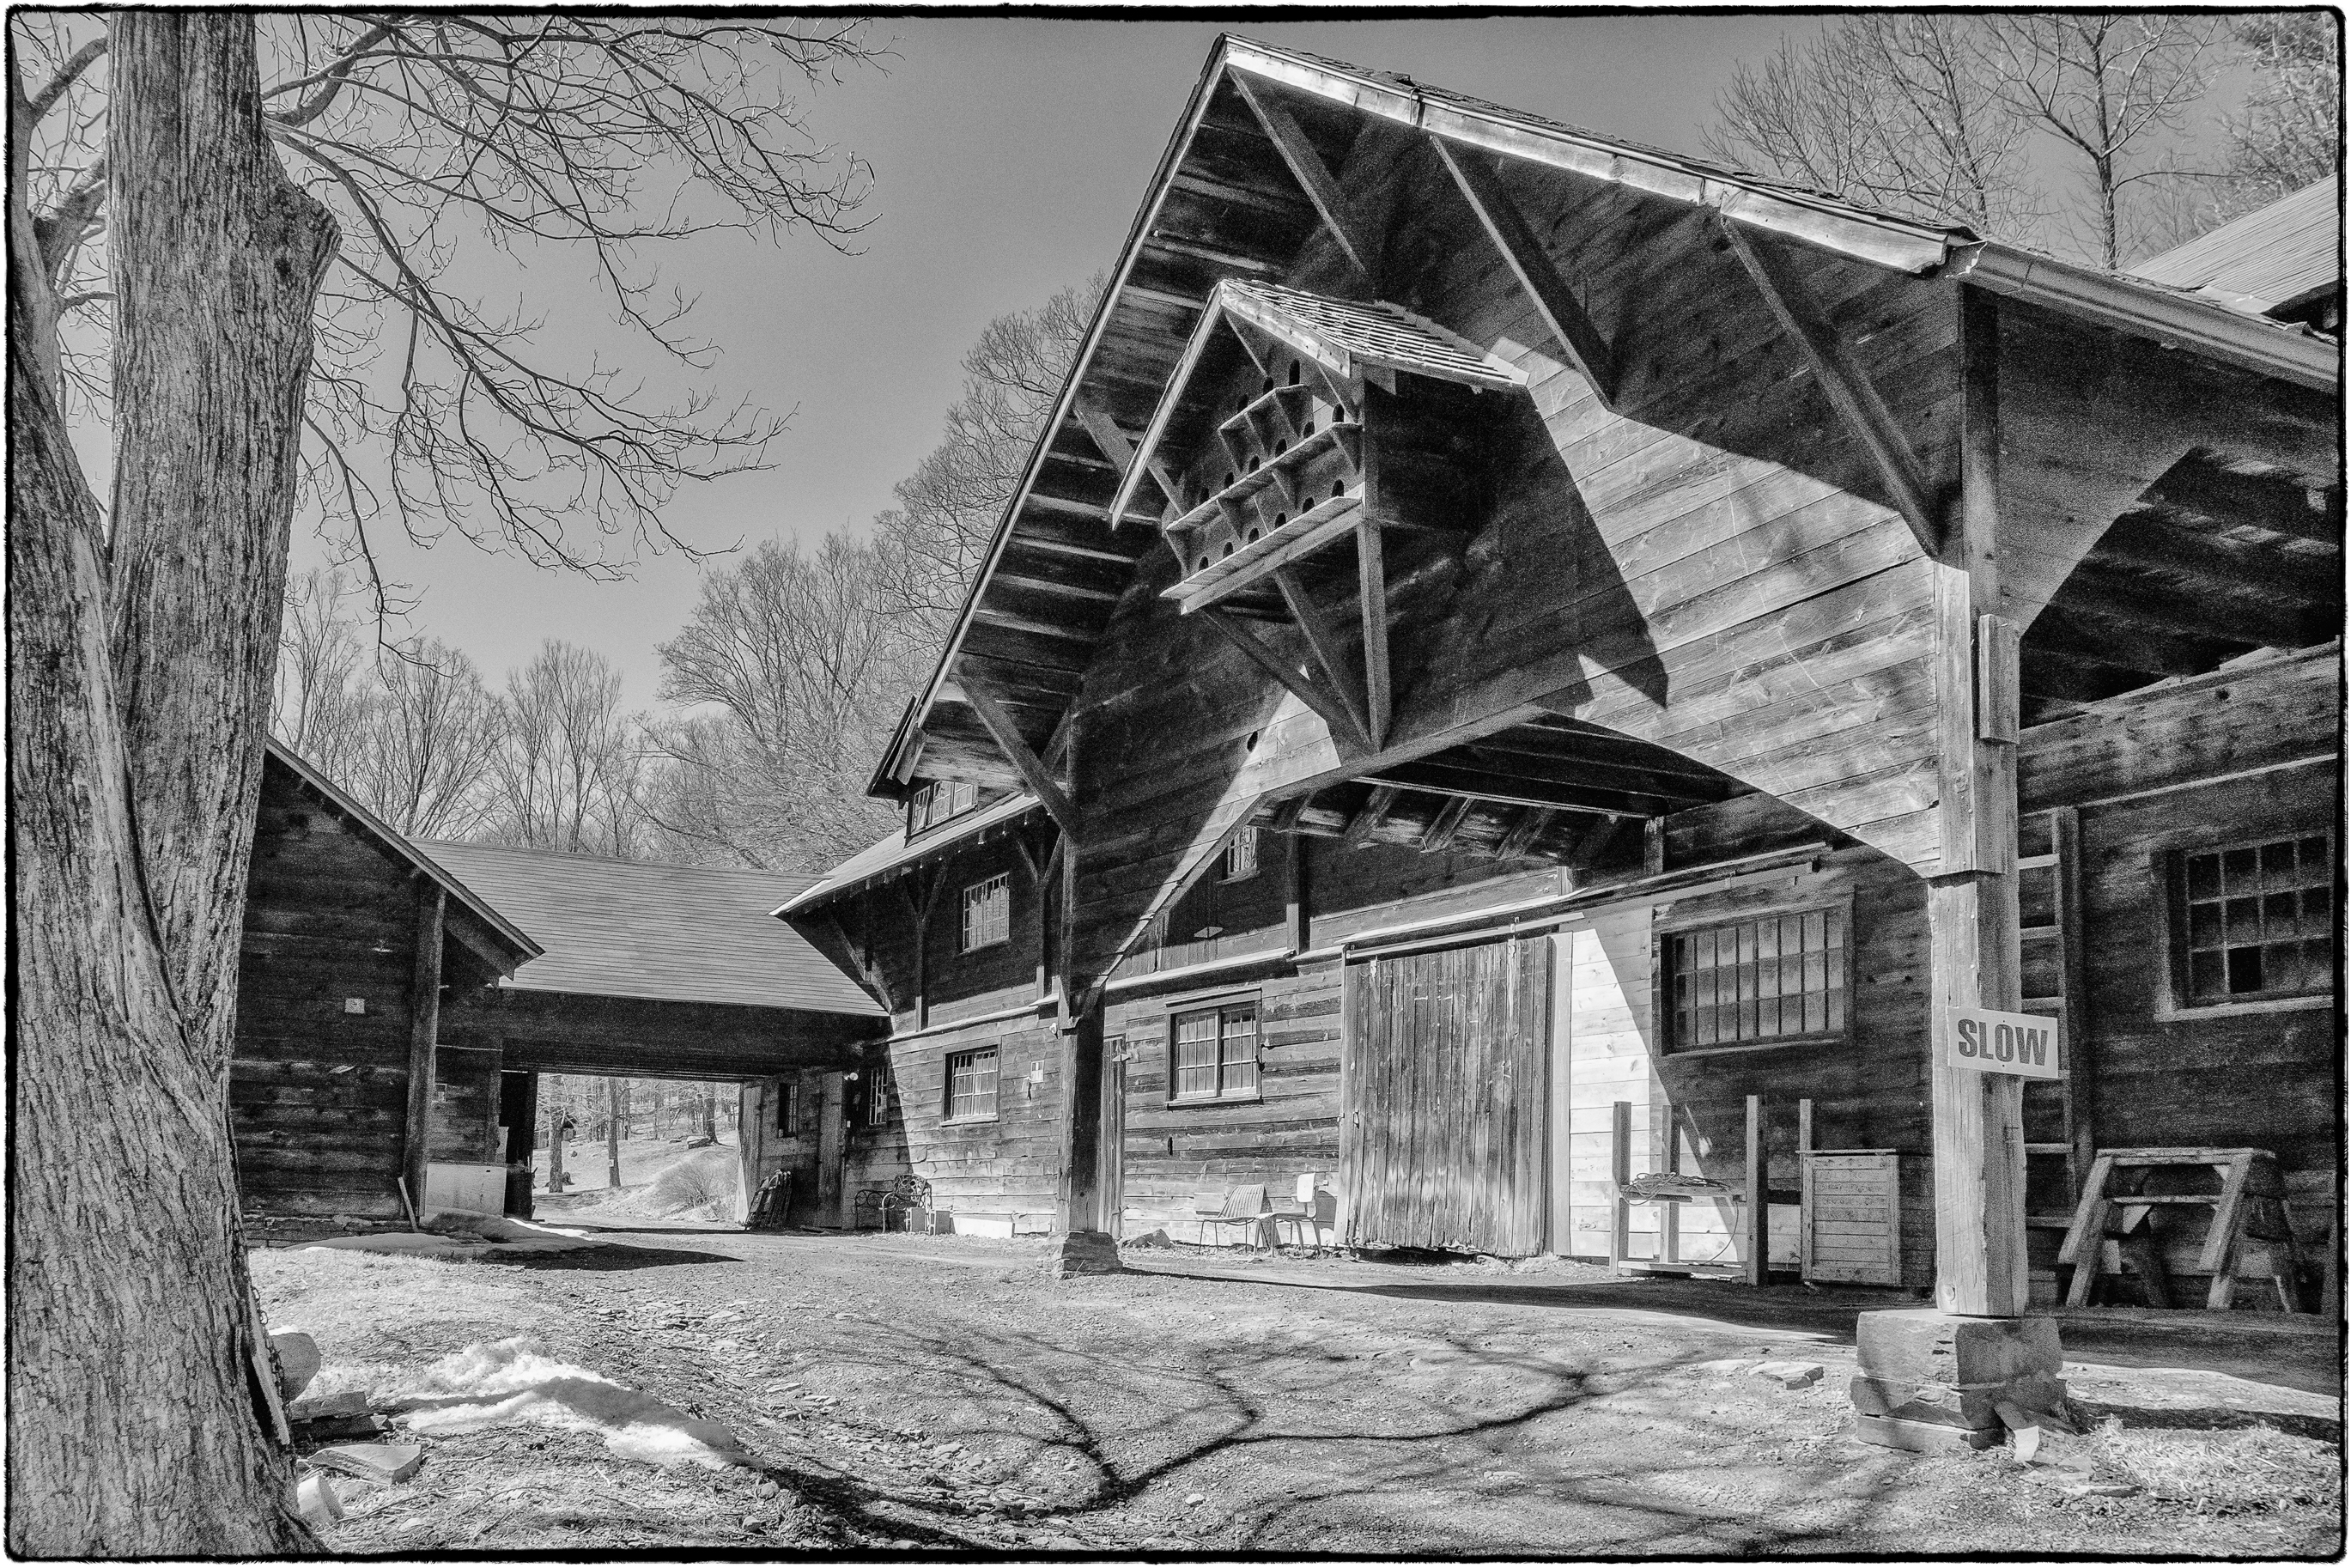 Byrdcliffe Art Colony, Woodstock, NY – Photography, Images